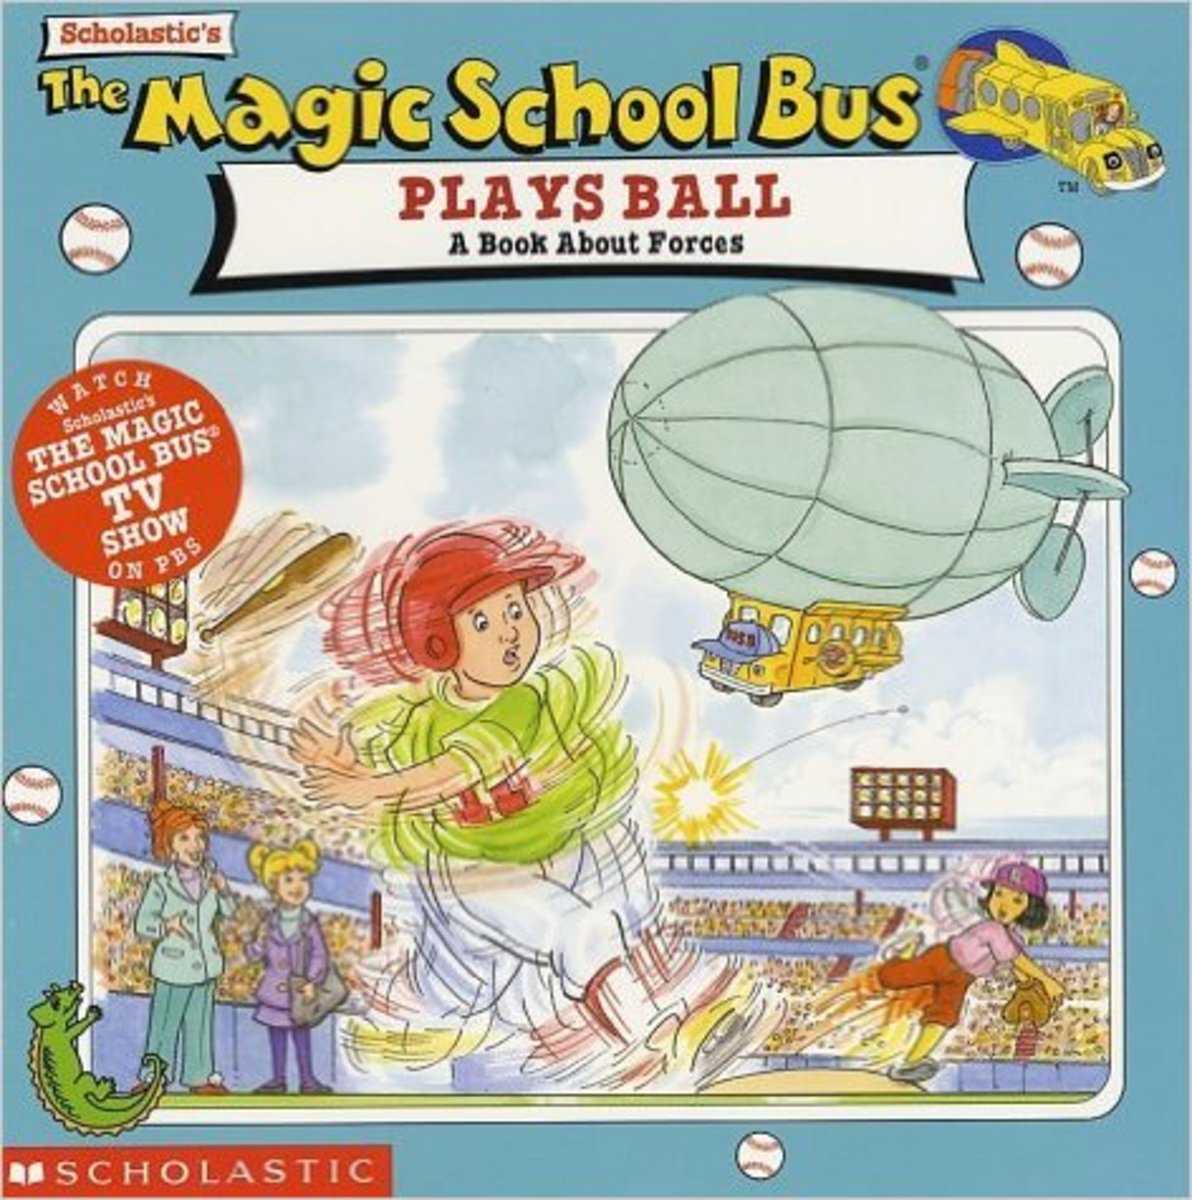 The Magic School Bus Plays Ball: A Book About Forces by Joanna Cole